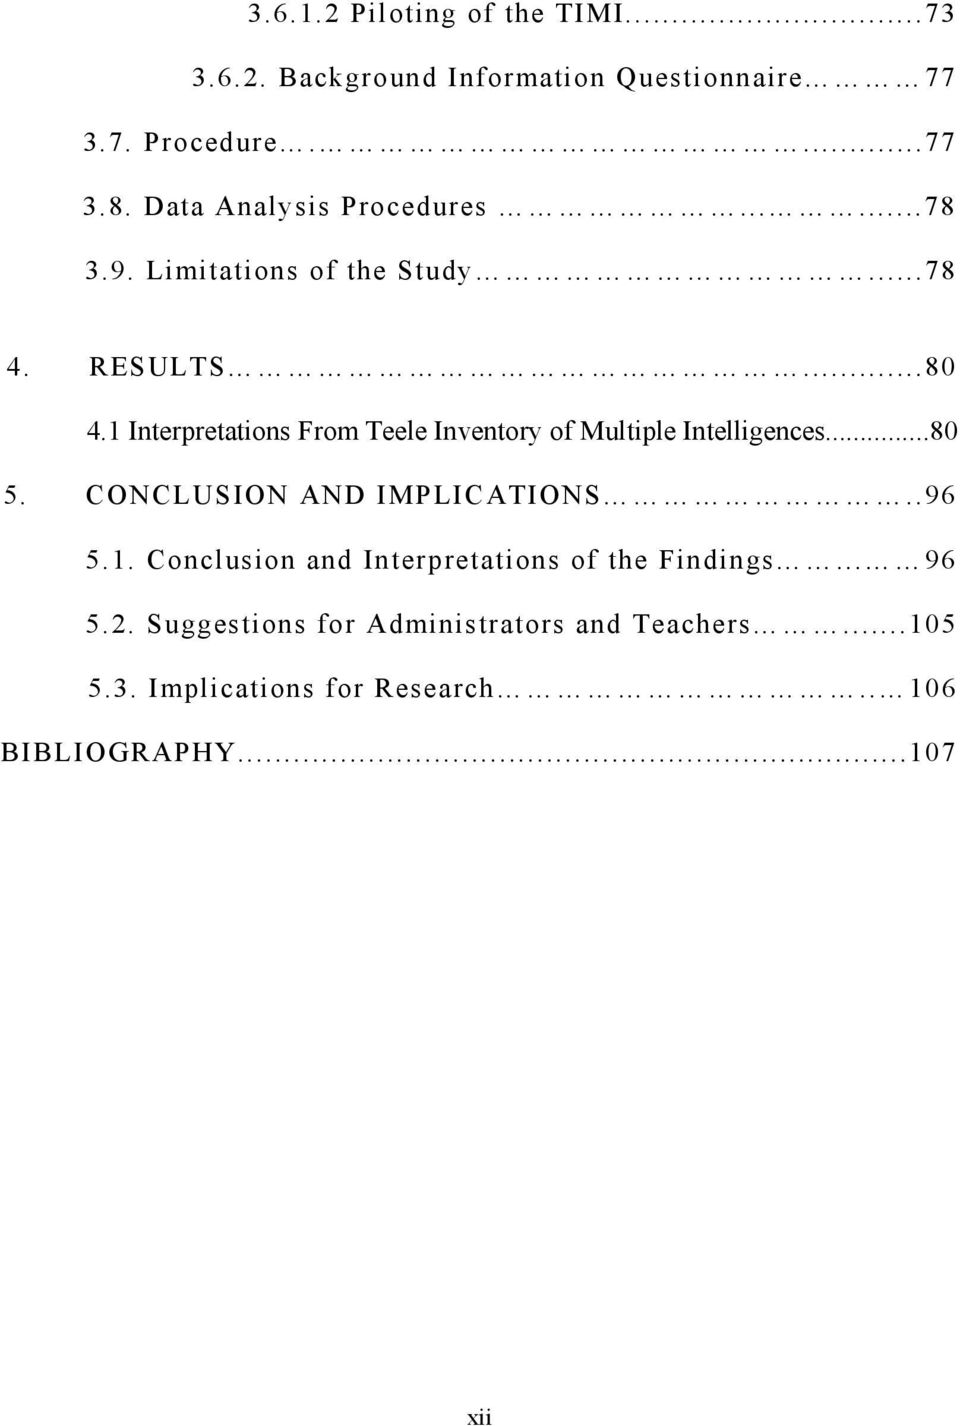 1 Interpretations From Teele Inventory of Multiple Intelligences...80 5. CONCLUSION AND IMPLICATIONS..96 5.1. Conclusion and Interpretations of the Findings.